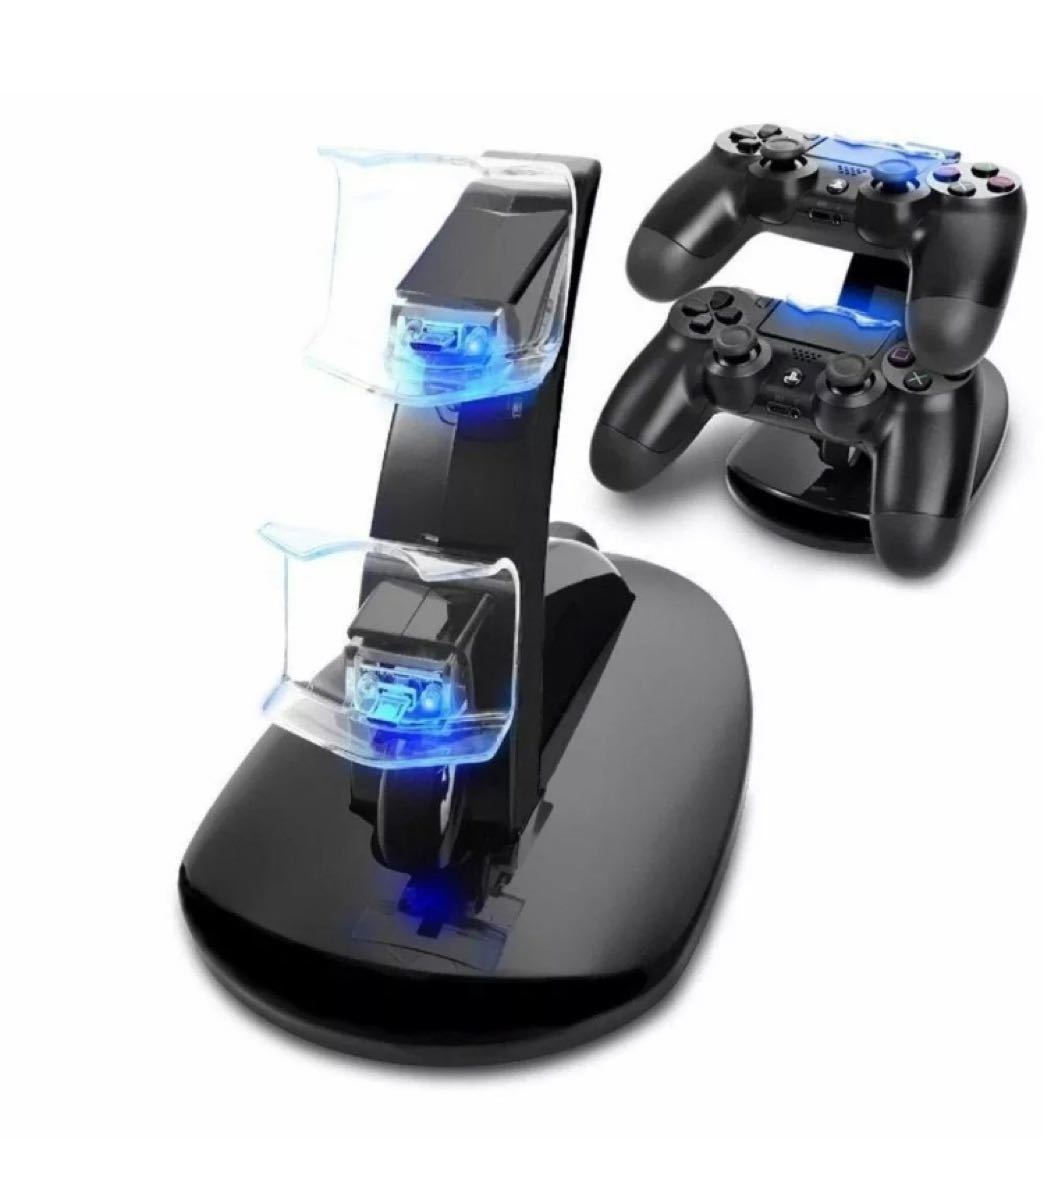 PS4 コントローラー用 充電ドッグ